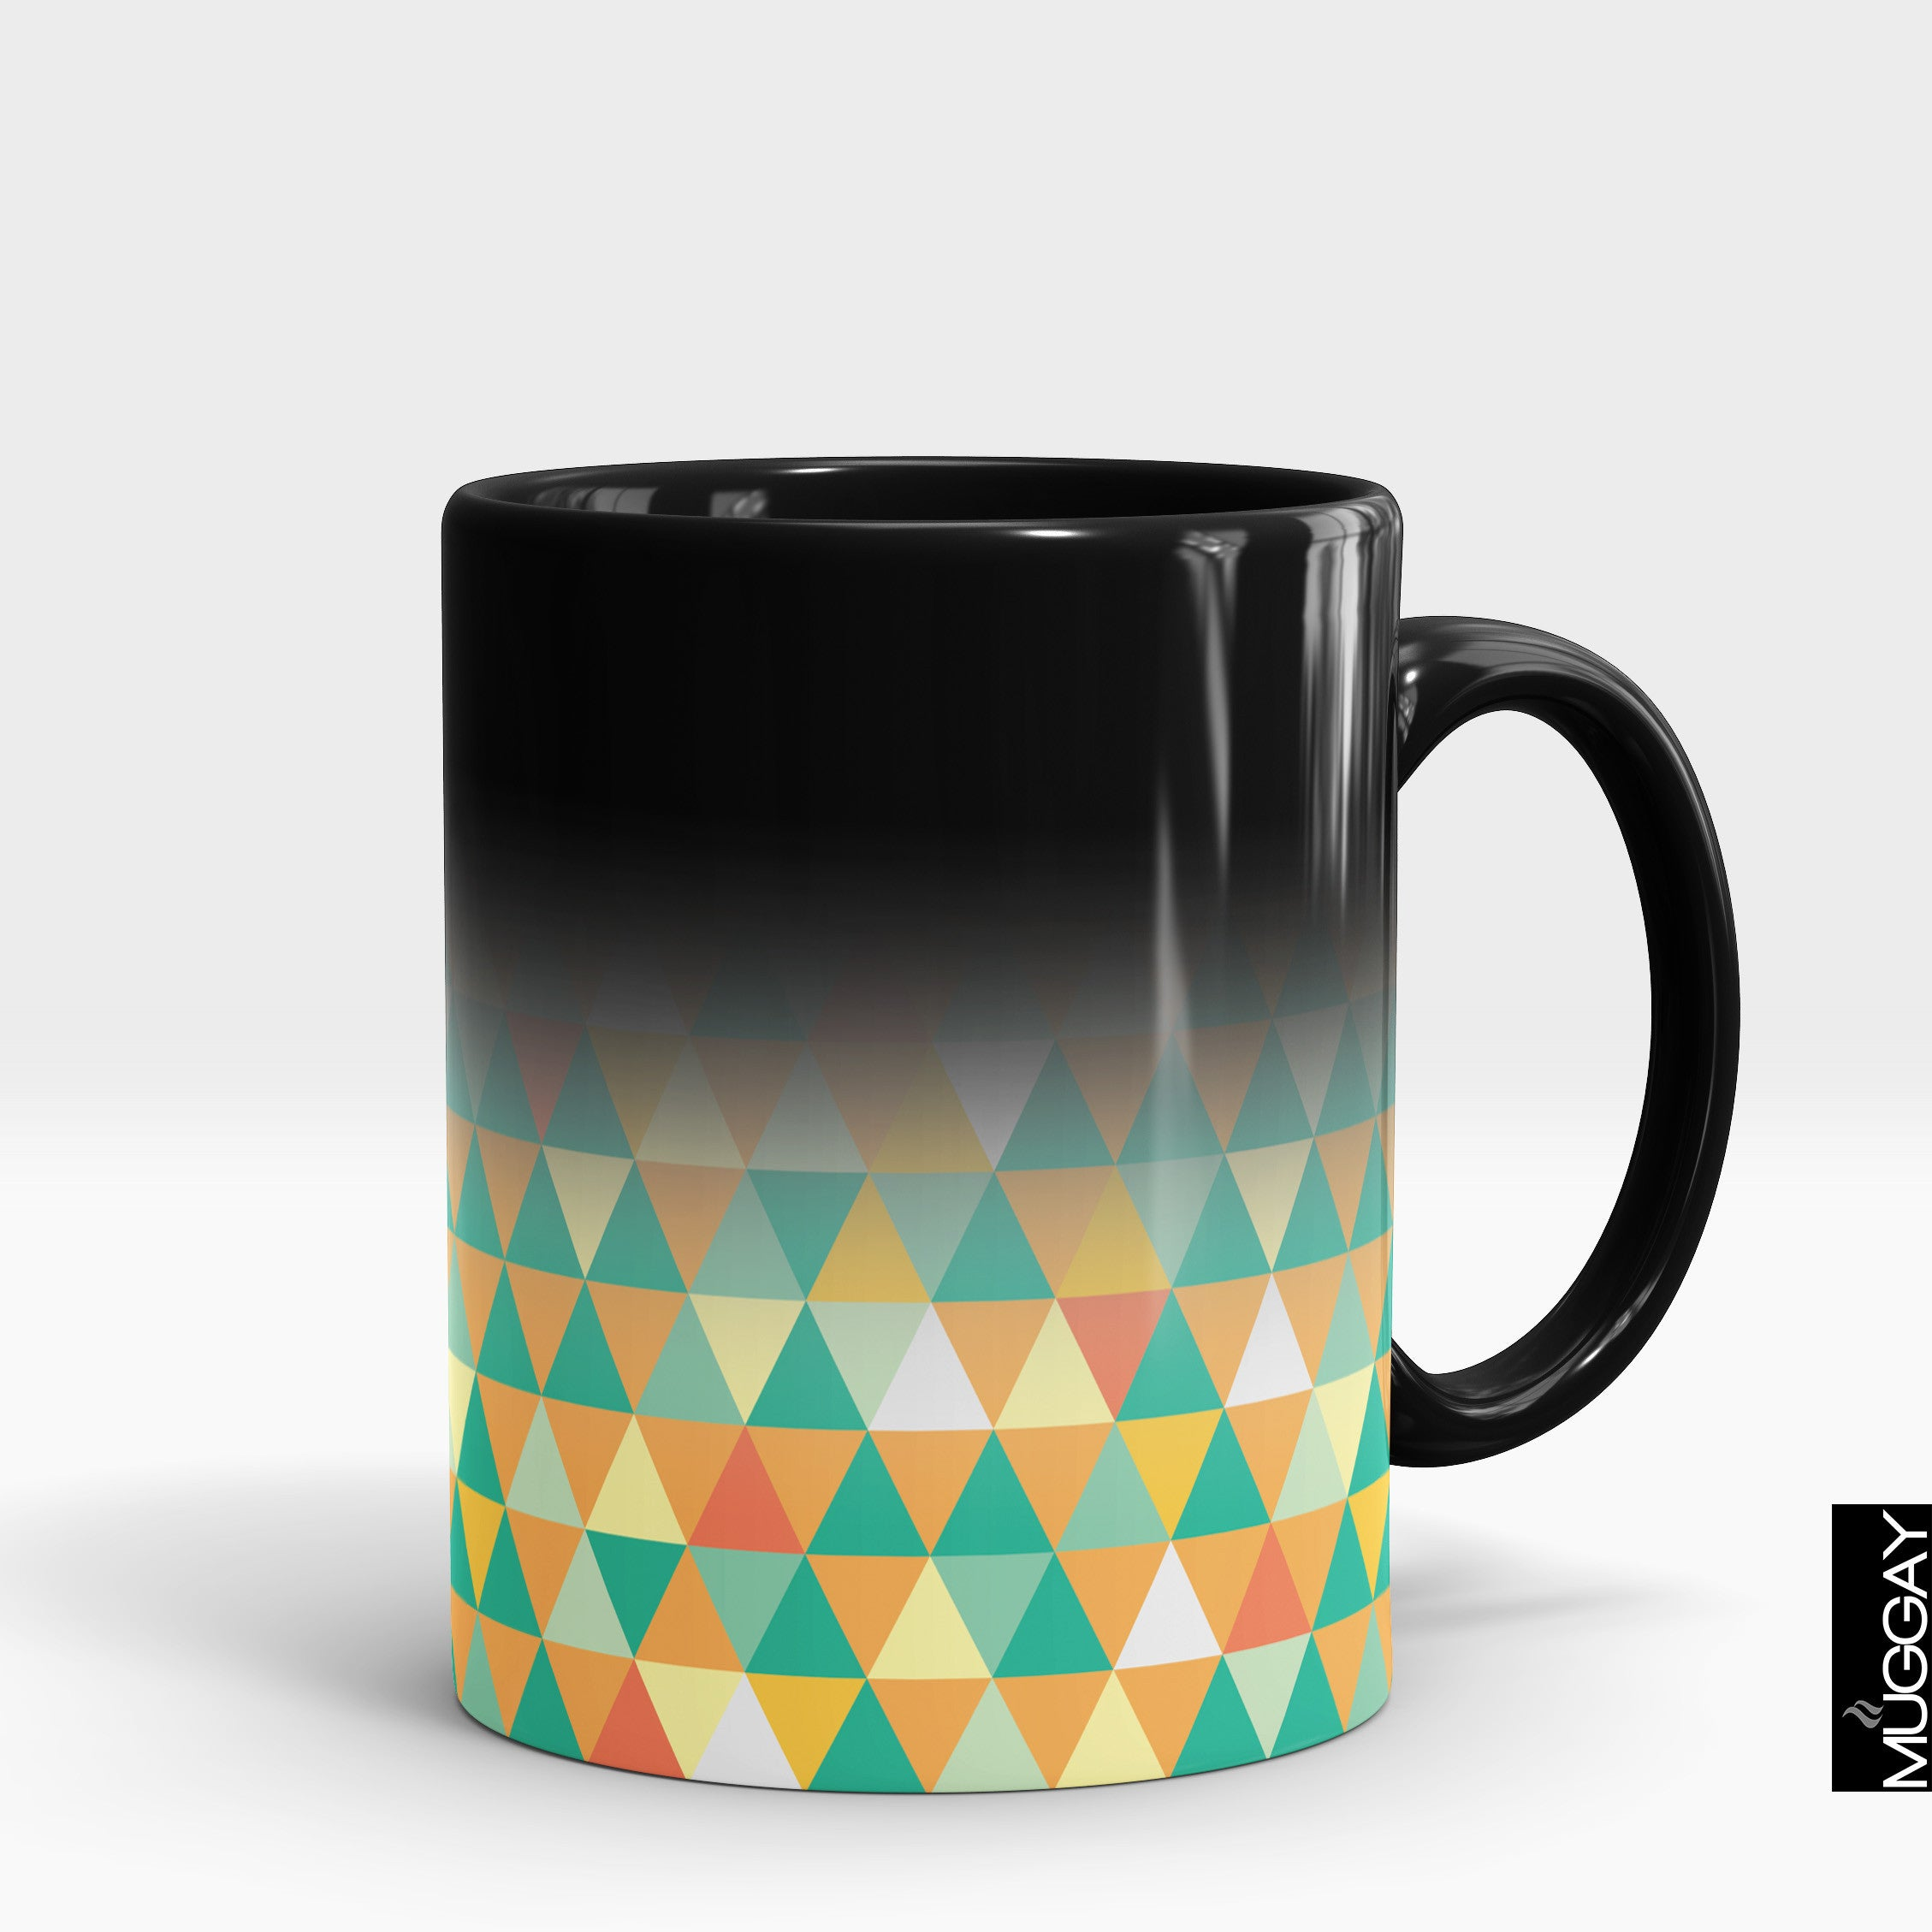 Pattern design mugs1